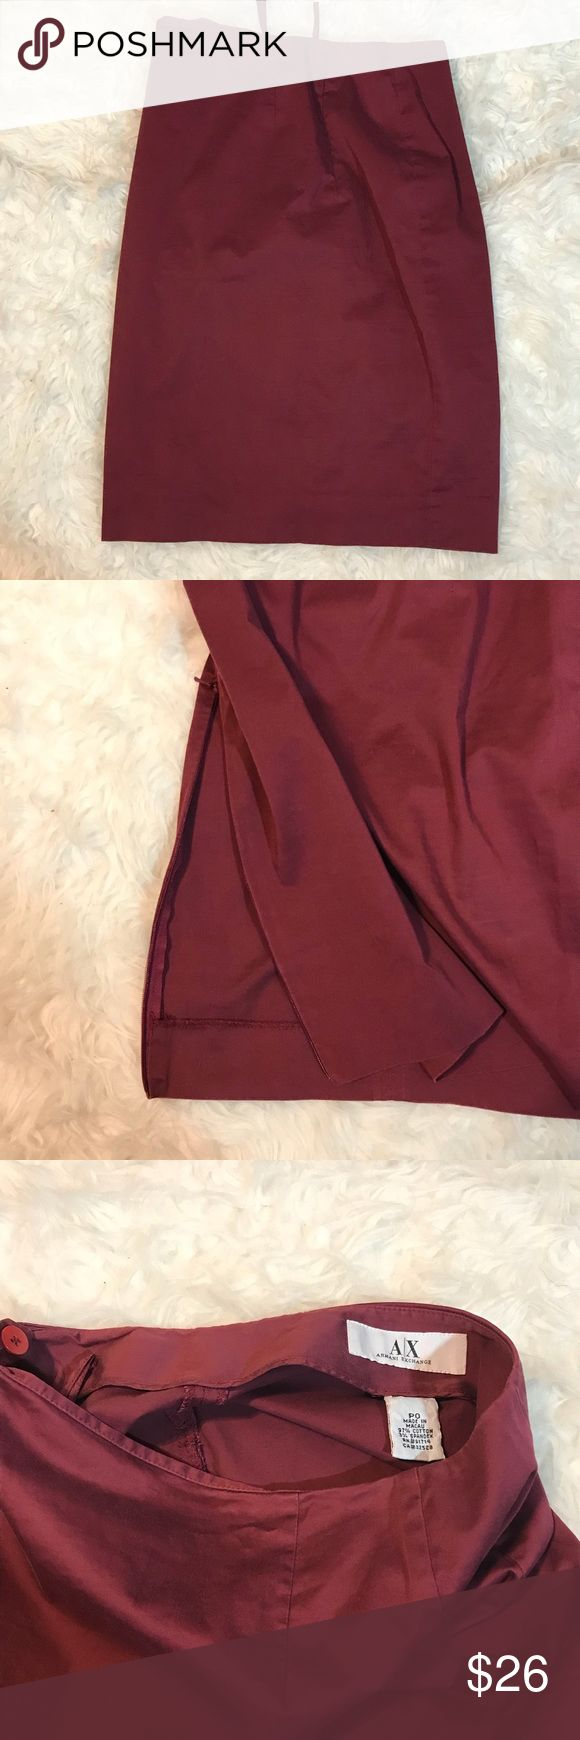 Armani Exchange Burgundy Pencil Skirt Armani Exchange Burgundy Pencil Skirt. Preowned. Button and zippered side closure. Zipper at bottom size hem to change slit length.   Length 21 inches  Waistline is 26 inches  Size petite 0.  97 cotton / spandex  Handwash A/X Armani Exchange Skirts Pencil